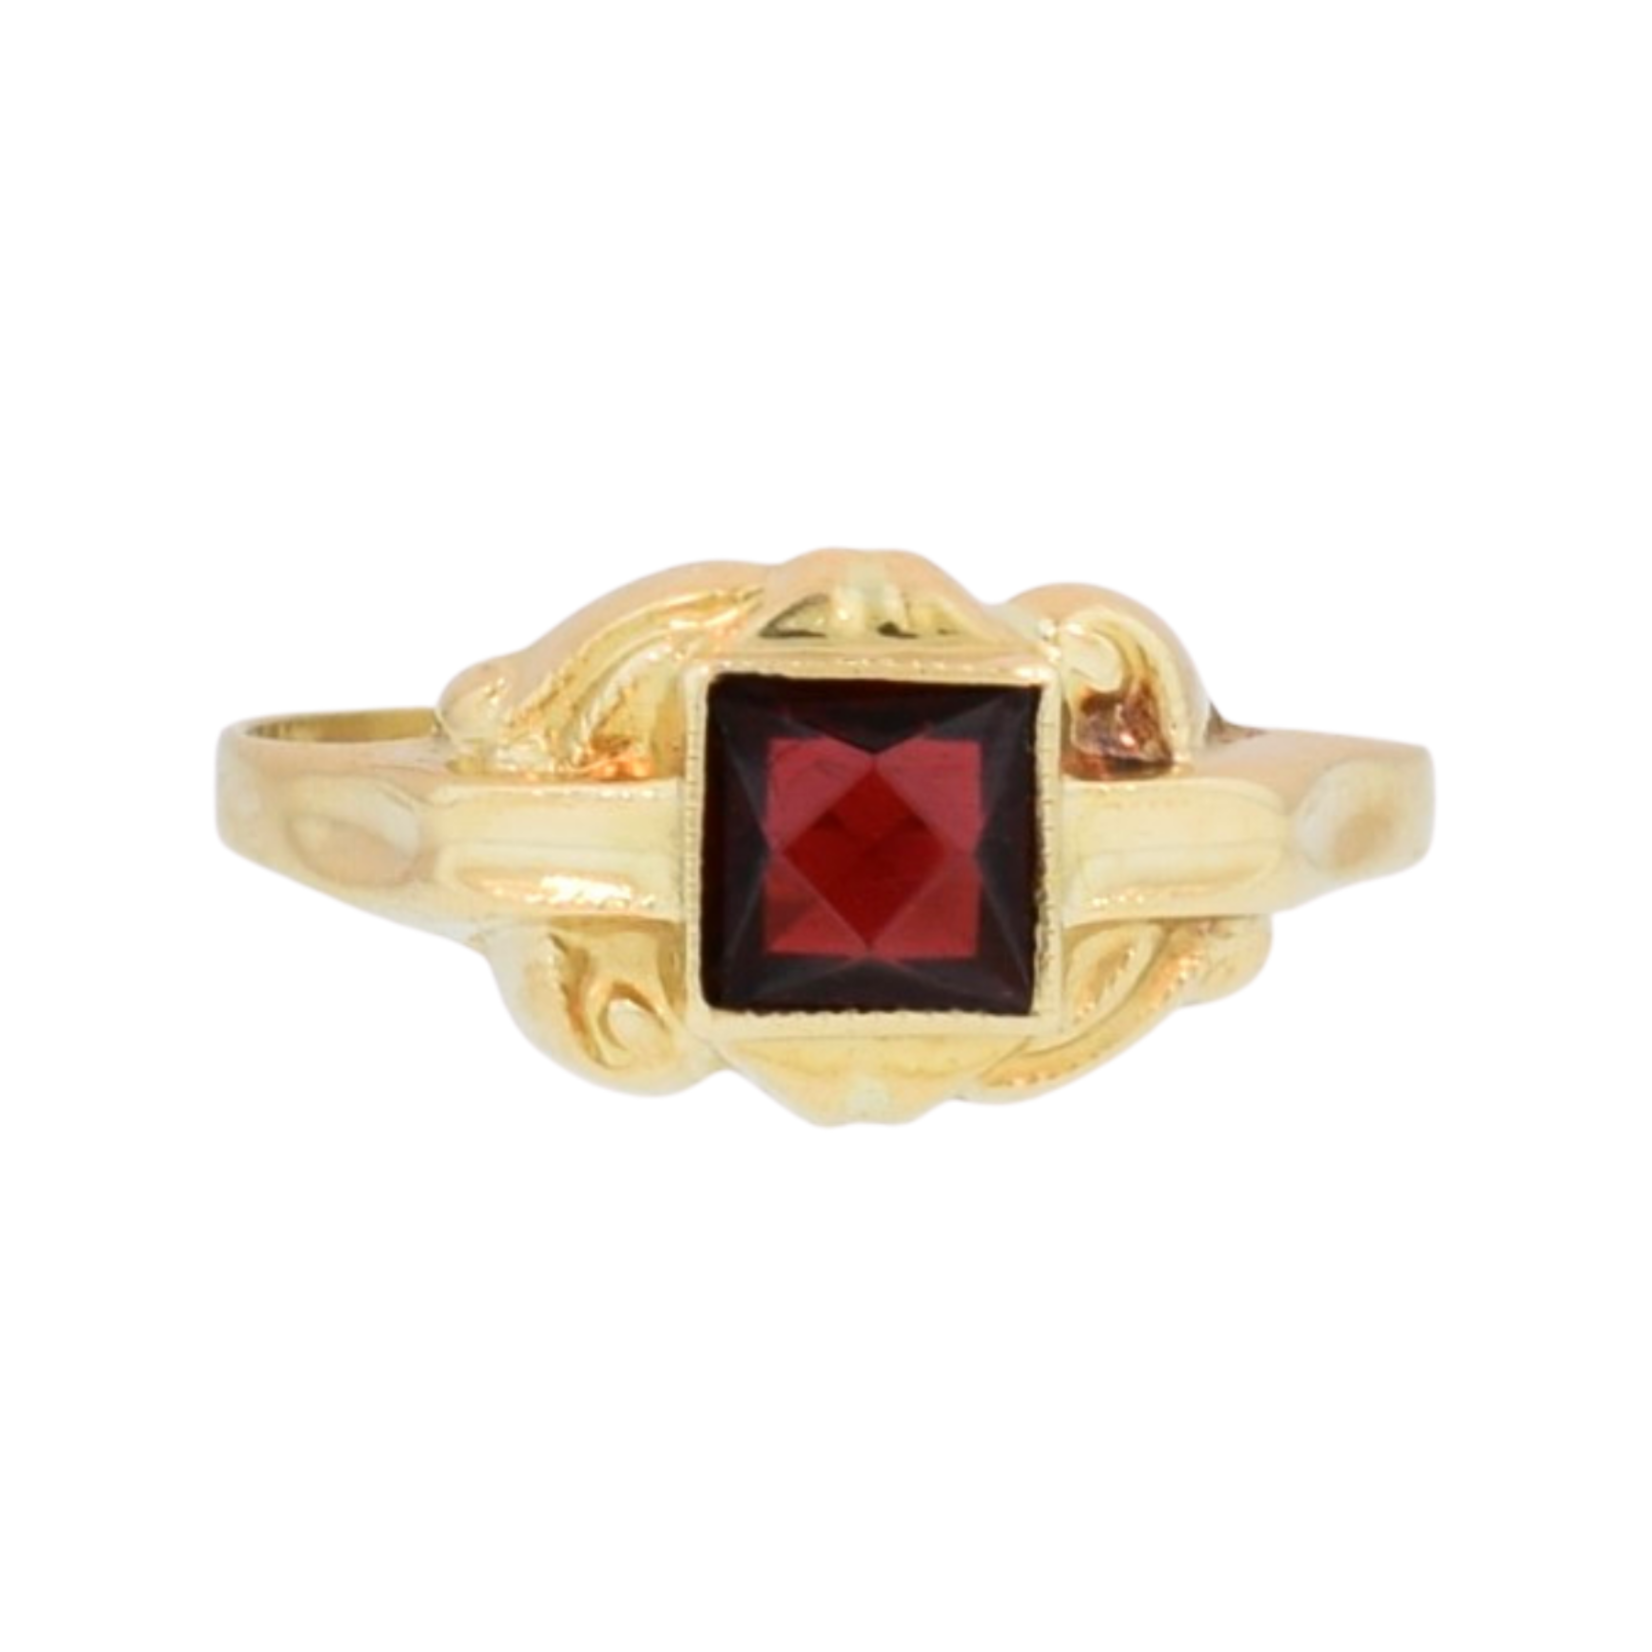 Estate Childs Gold Ring with Red Stone